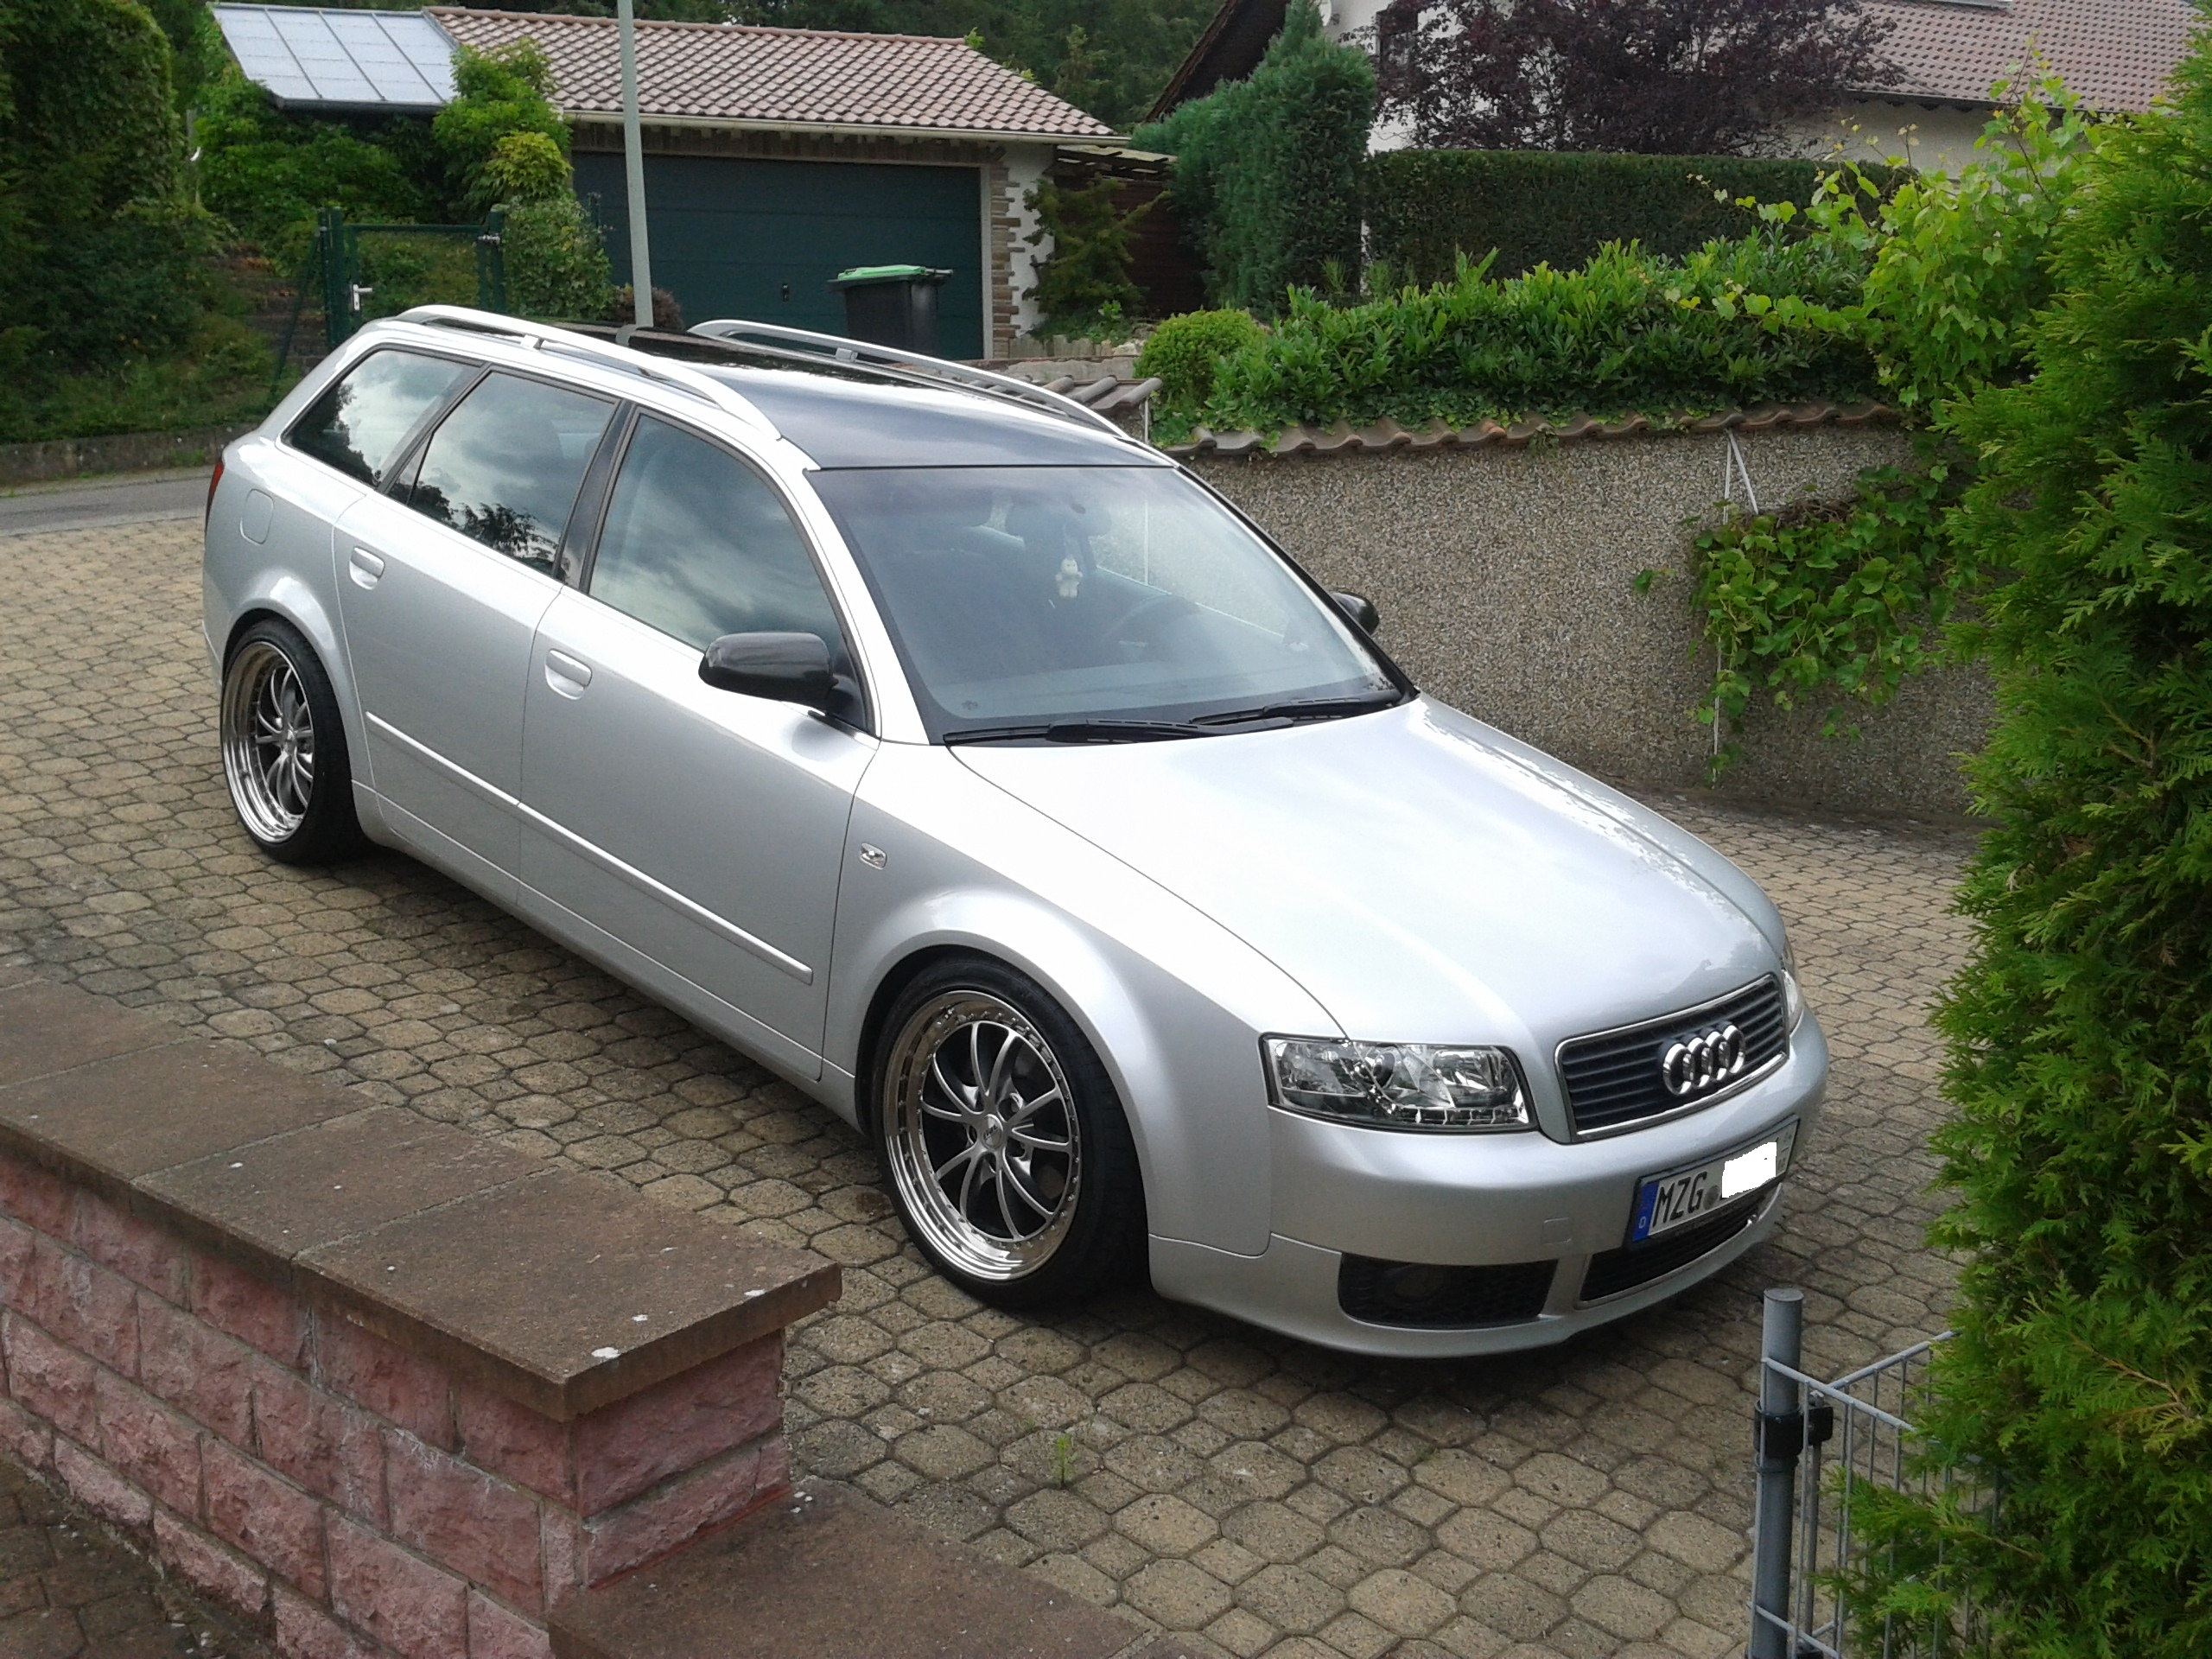 2002 audi a4 avant 8e pictures information and specs. Black Bedroom Furniture Sets. Home Design Ideas